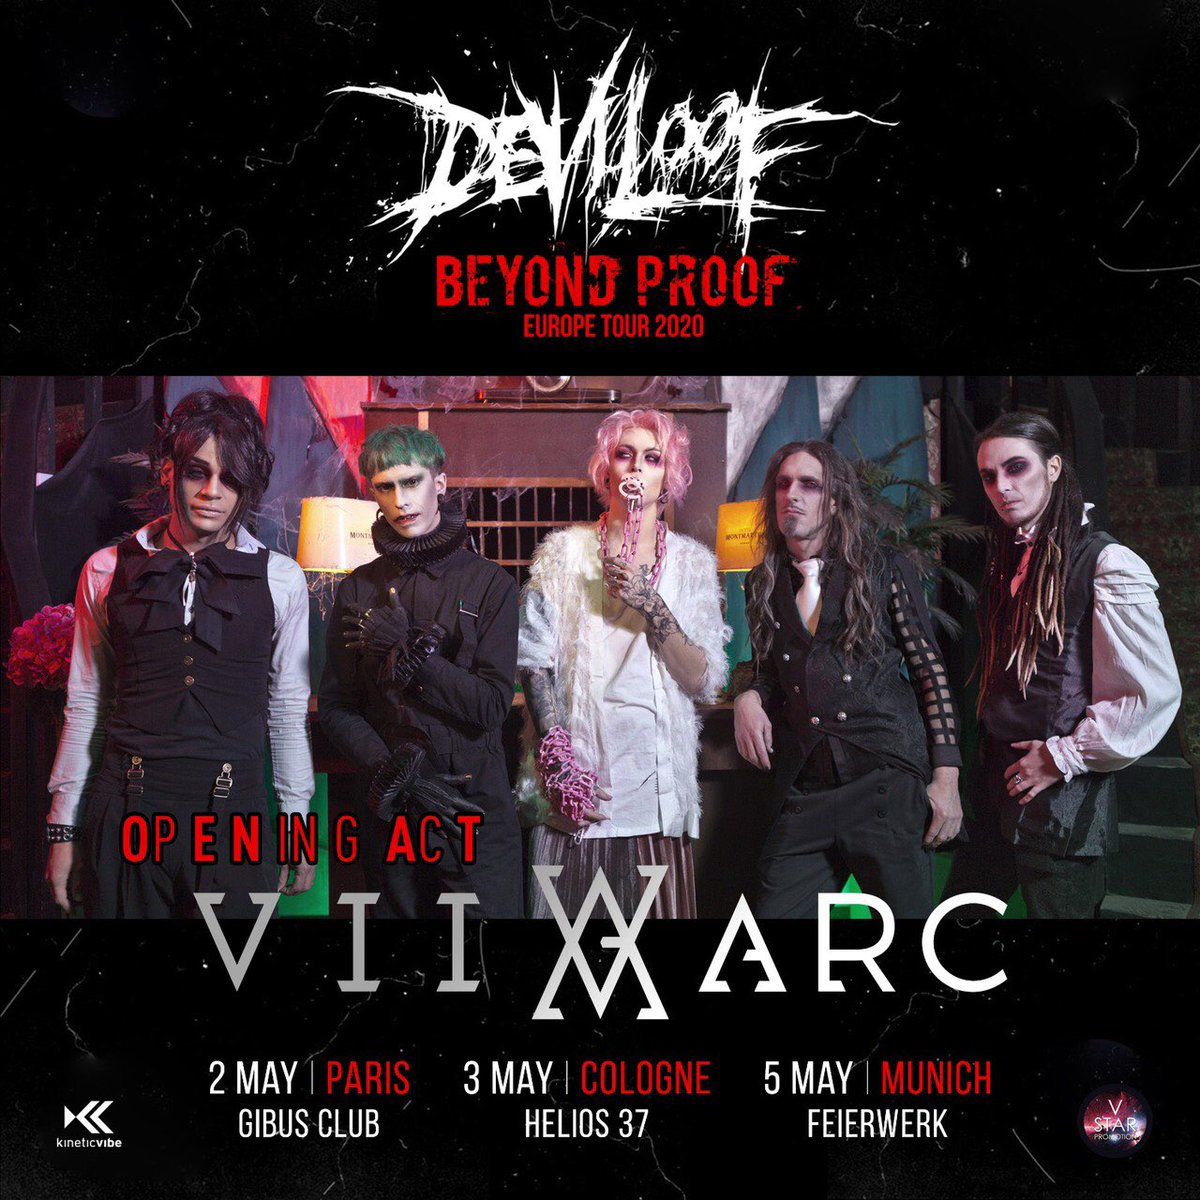 「BEYOND PROOF TOUR」 Opening Act @VIIARC  We are stoked to announce the VII ARC will be opening for us at the following shows of our European Tour! 2 May Paris 3 May Cologne  5 May Munich  See you there and as always Stay metalpic.twitter.com/YFOMQQ3EVl